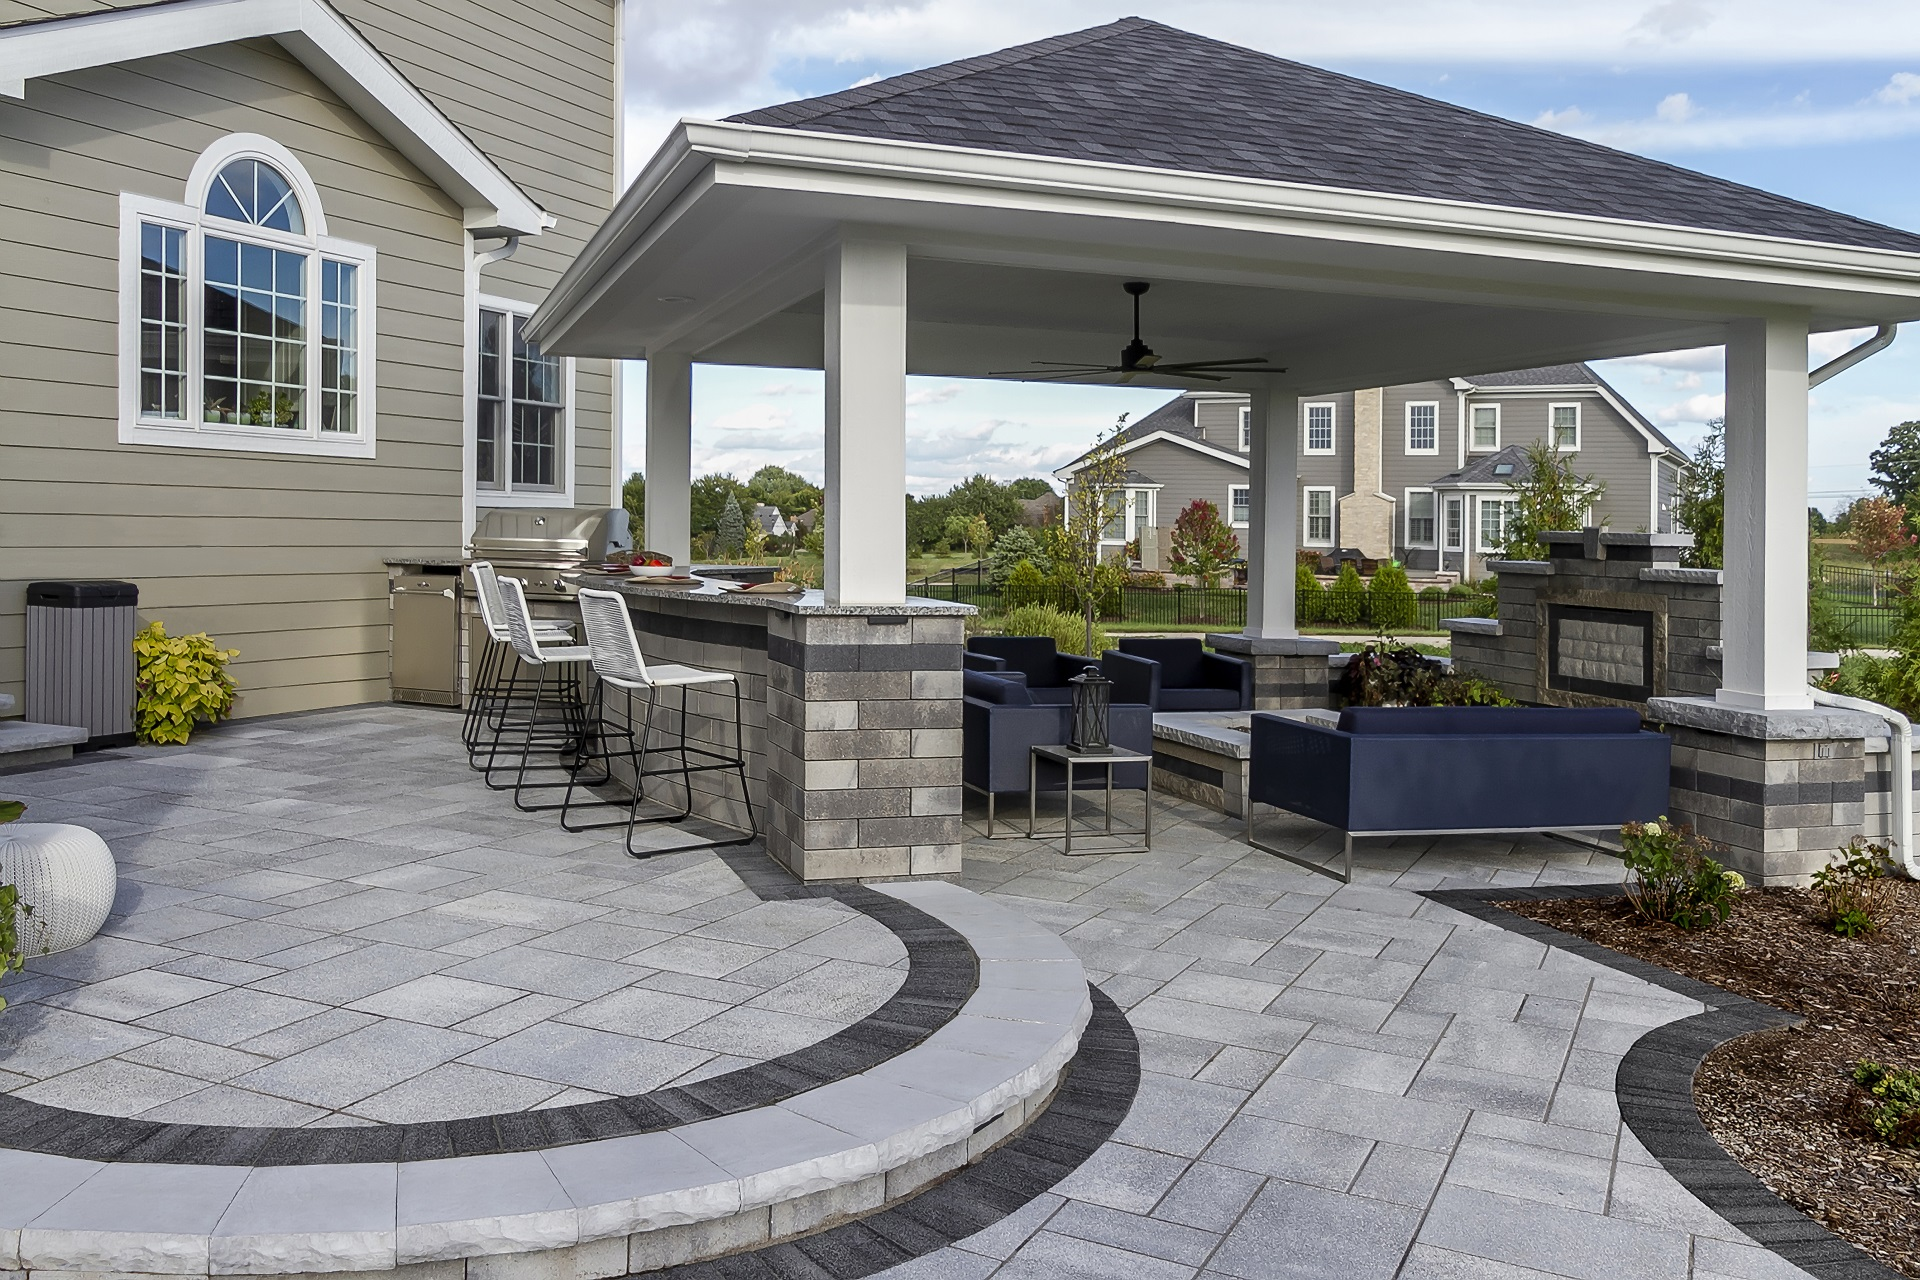 Patio pavers and new outdoor kitchen in Shelby Township MI